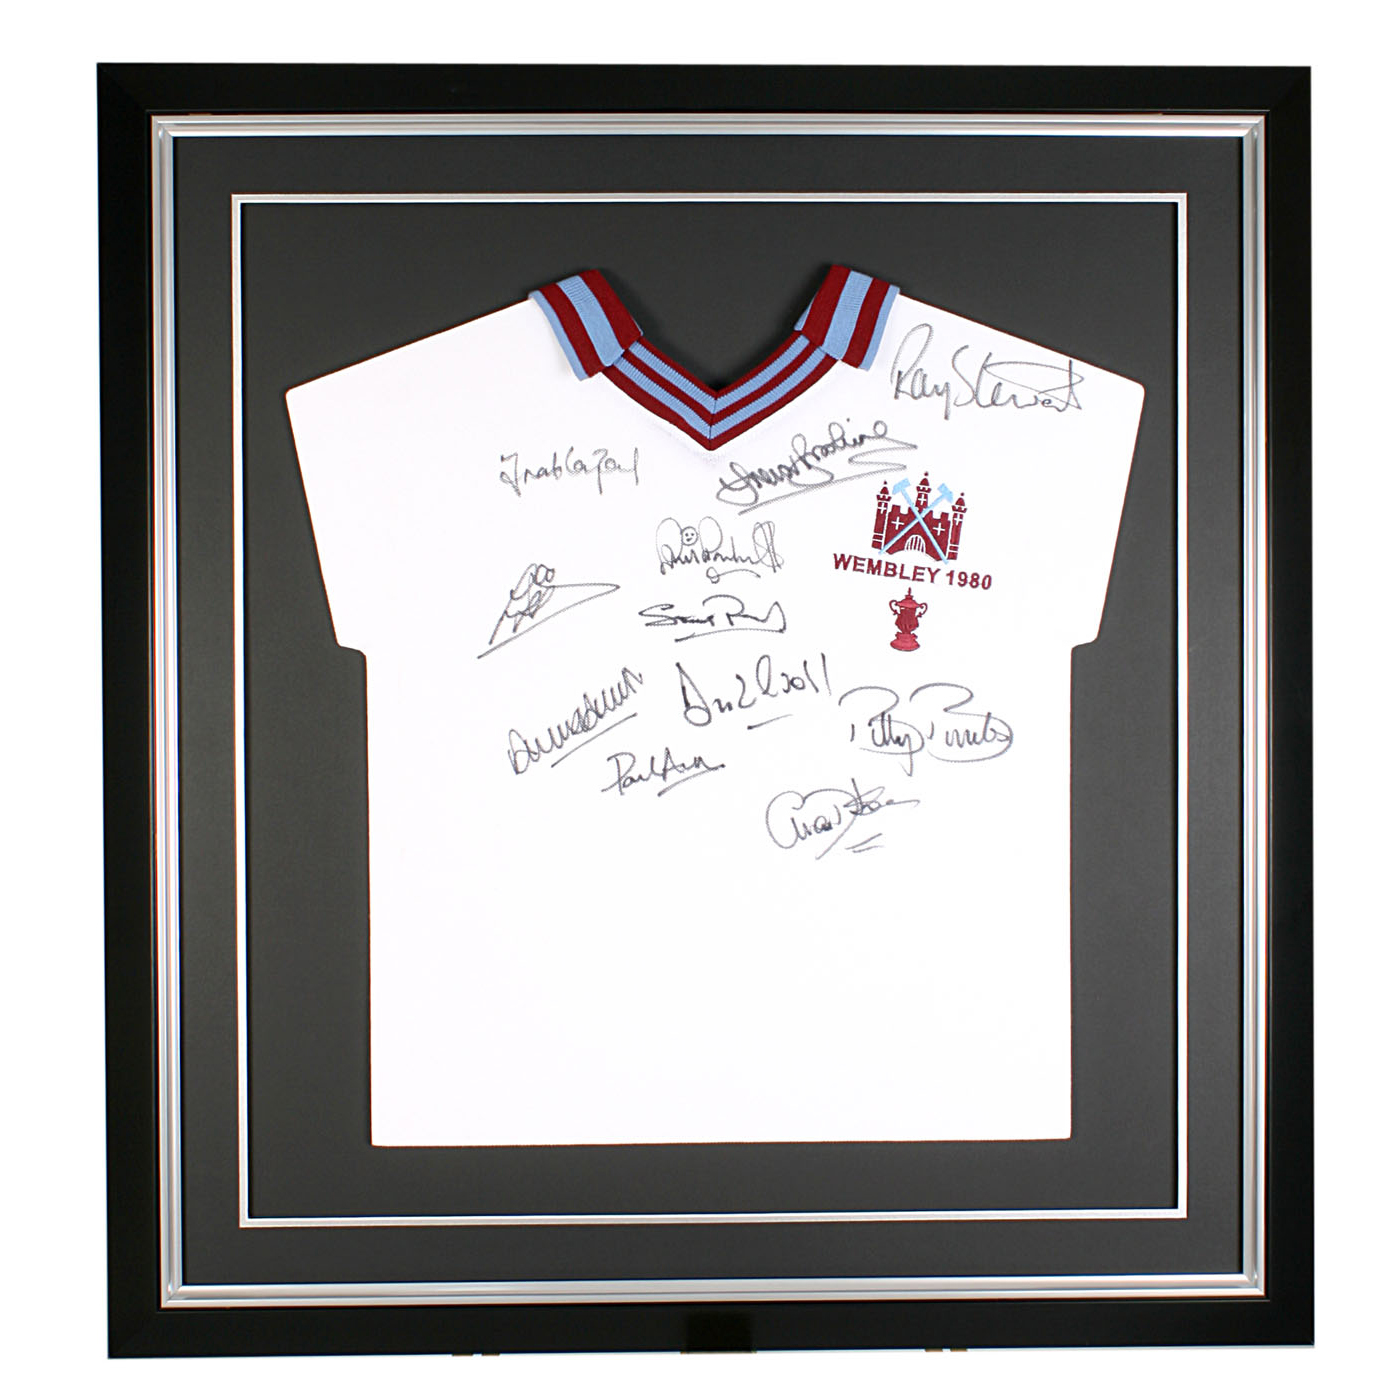 Signed 1980 FA Cup West Ham United Shirt - 29 x 27 Inch